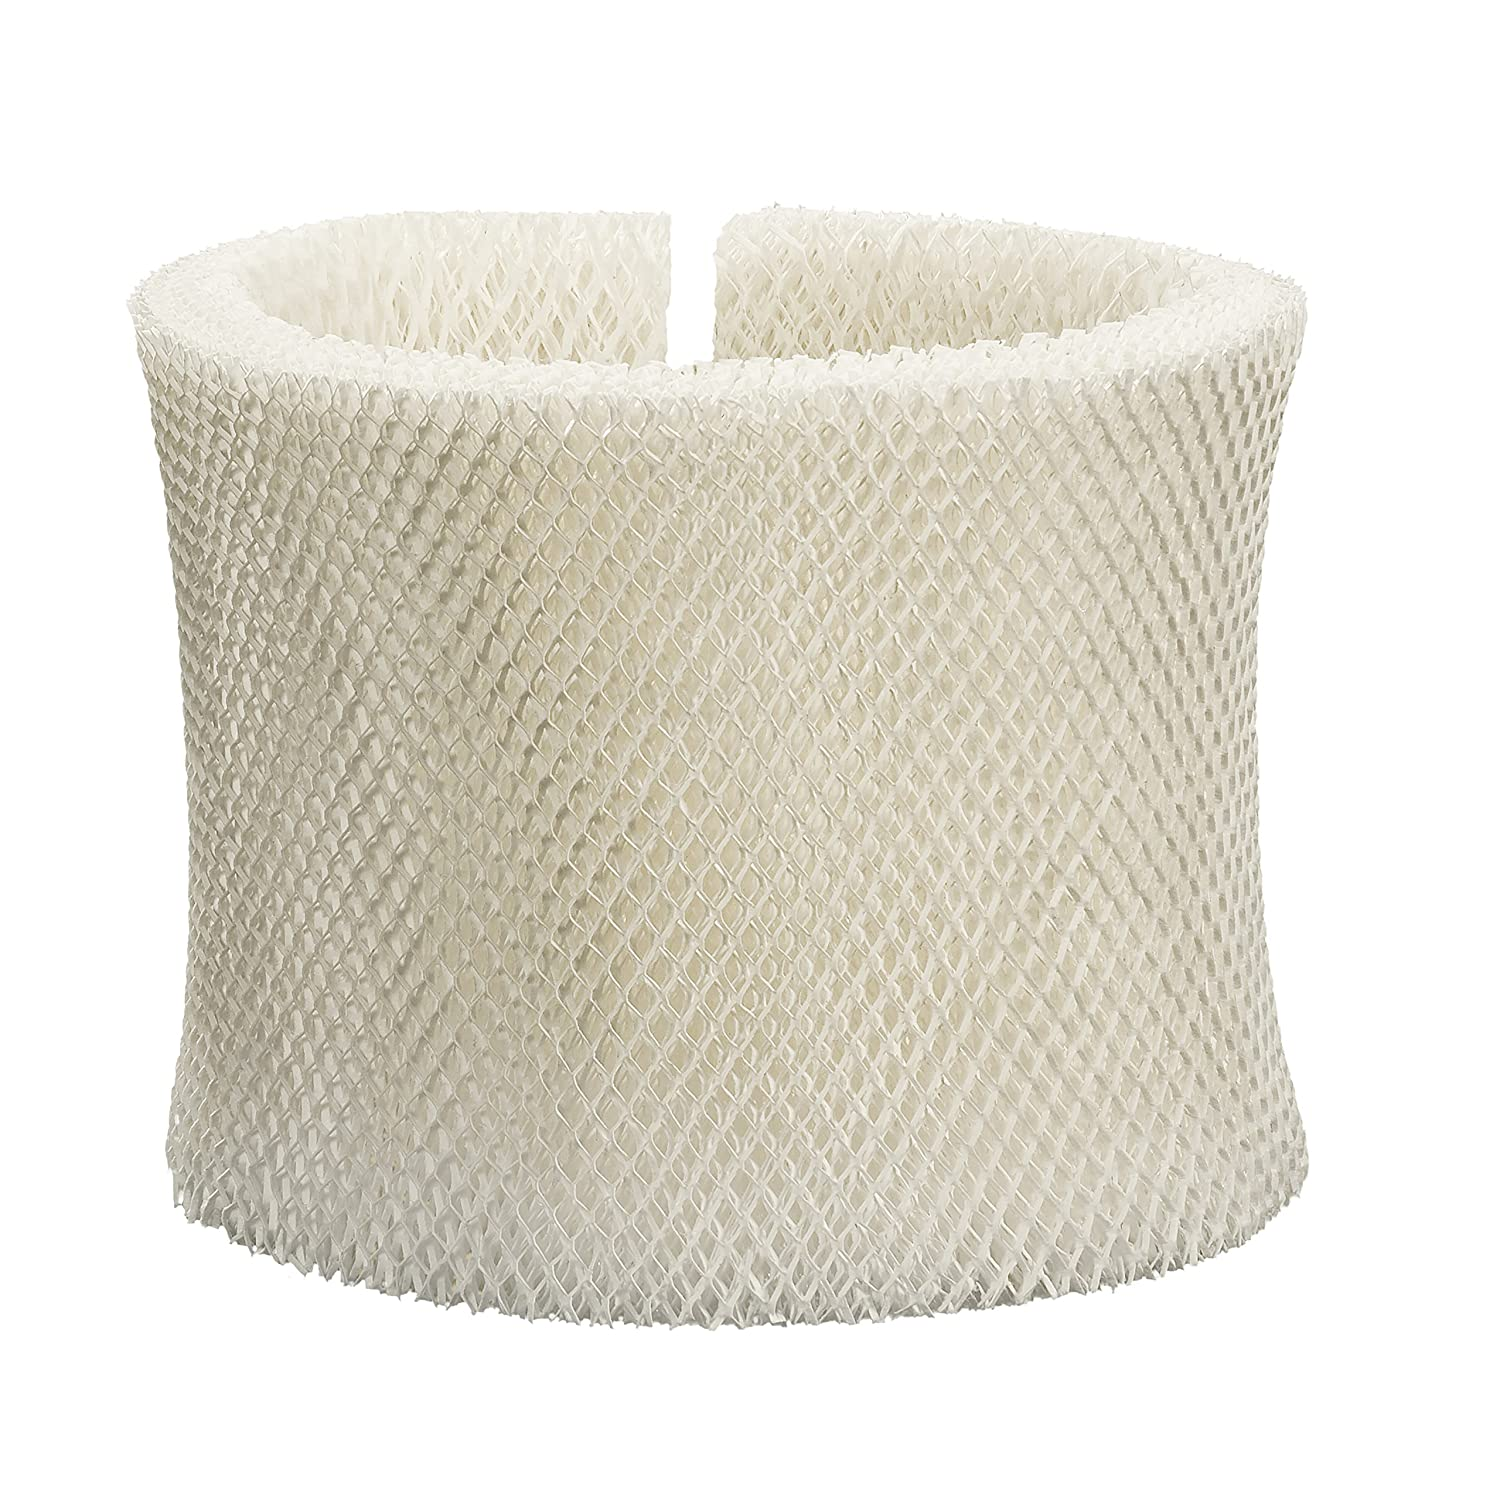 AIRCARE MAF2 Replacement Wicking Humidifier Filter Essick Air